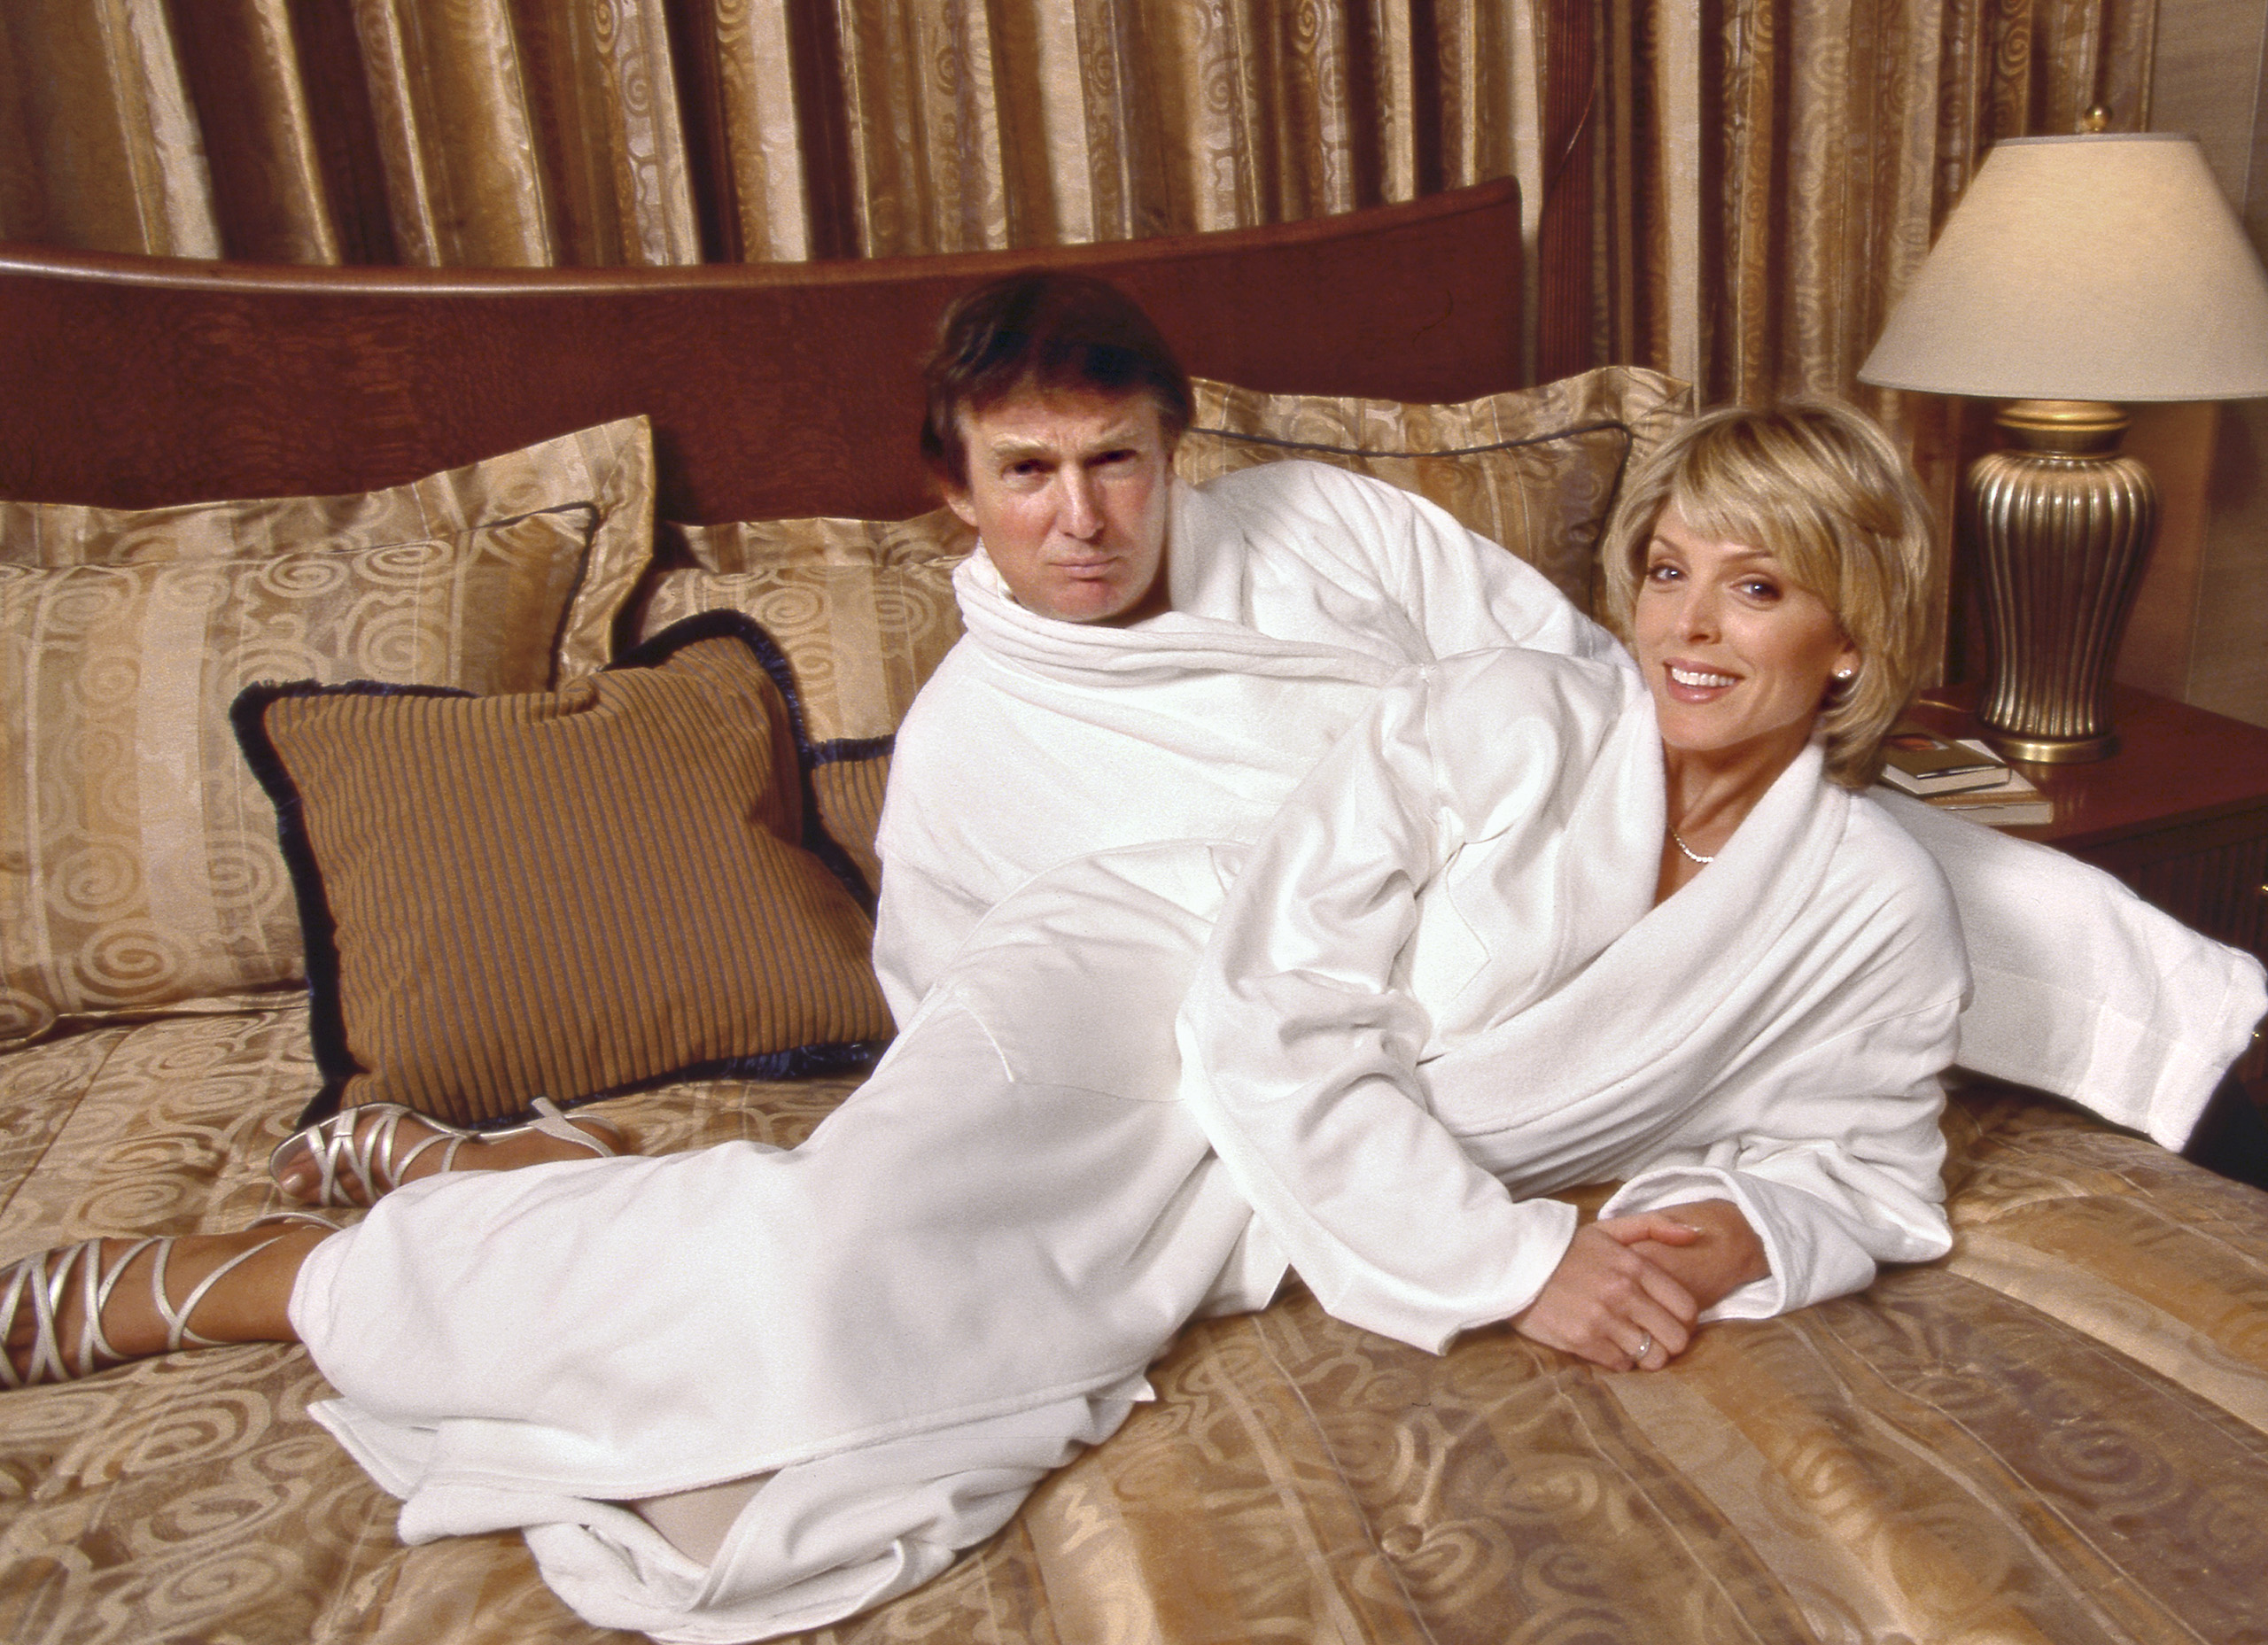 <b>1996</b> Trump and his second wife, Marla Maples, at Trump International Hotel &amp; Tower in New York City.